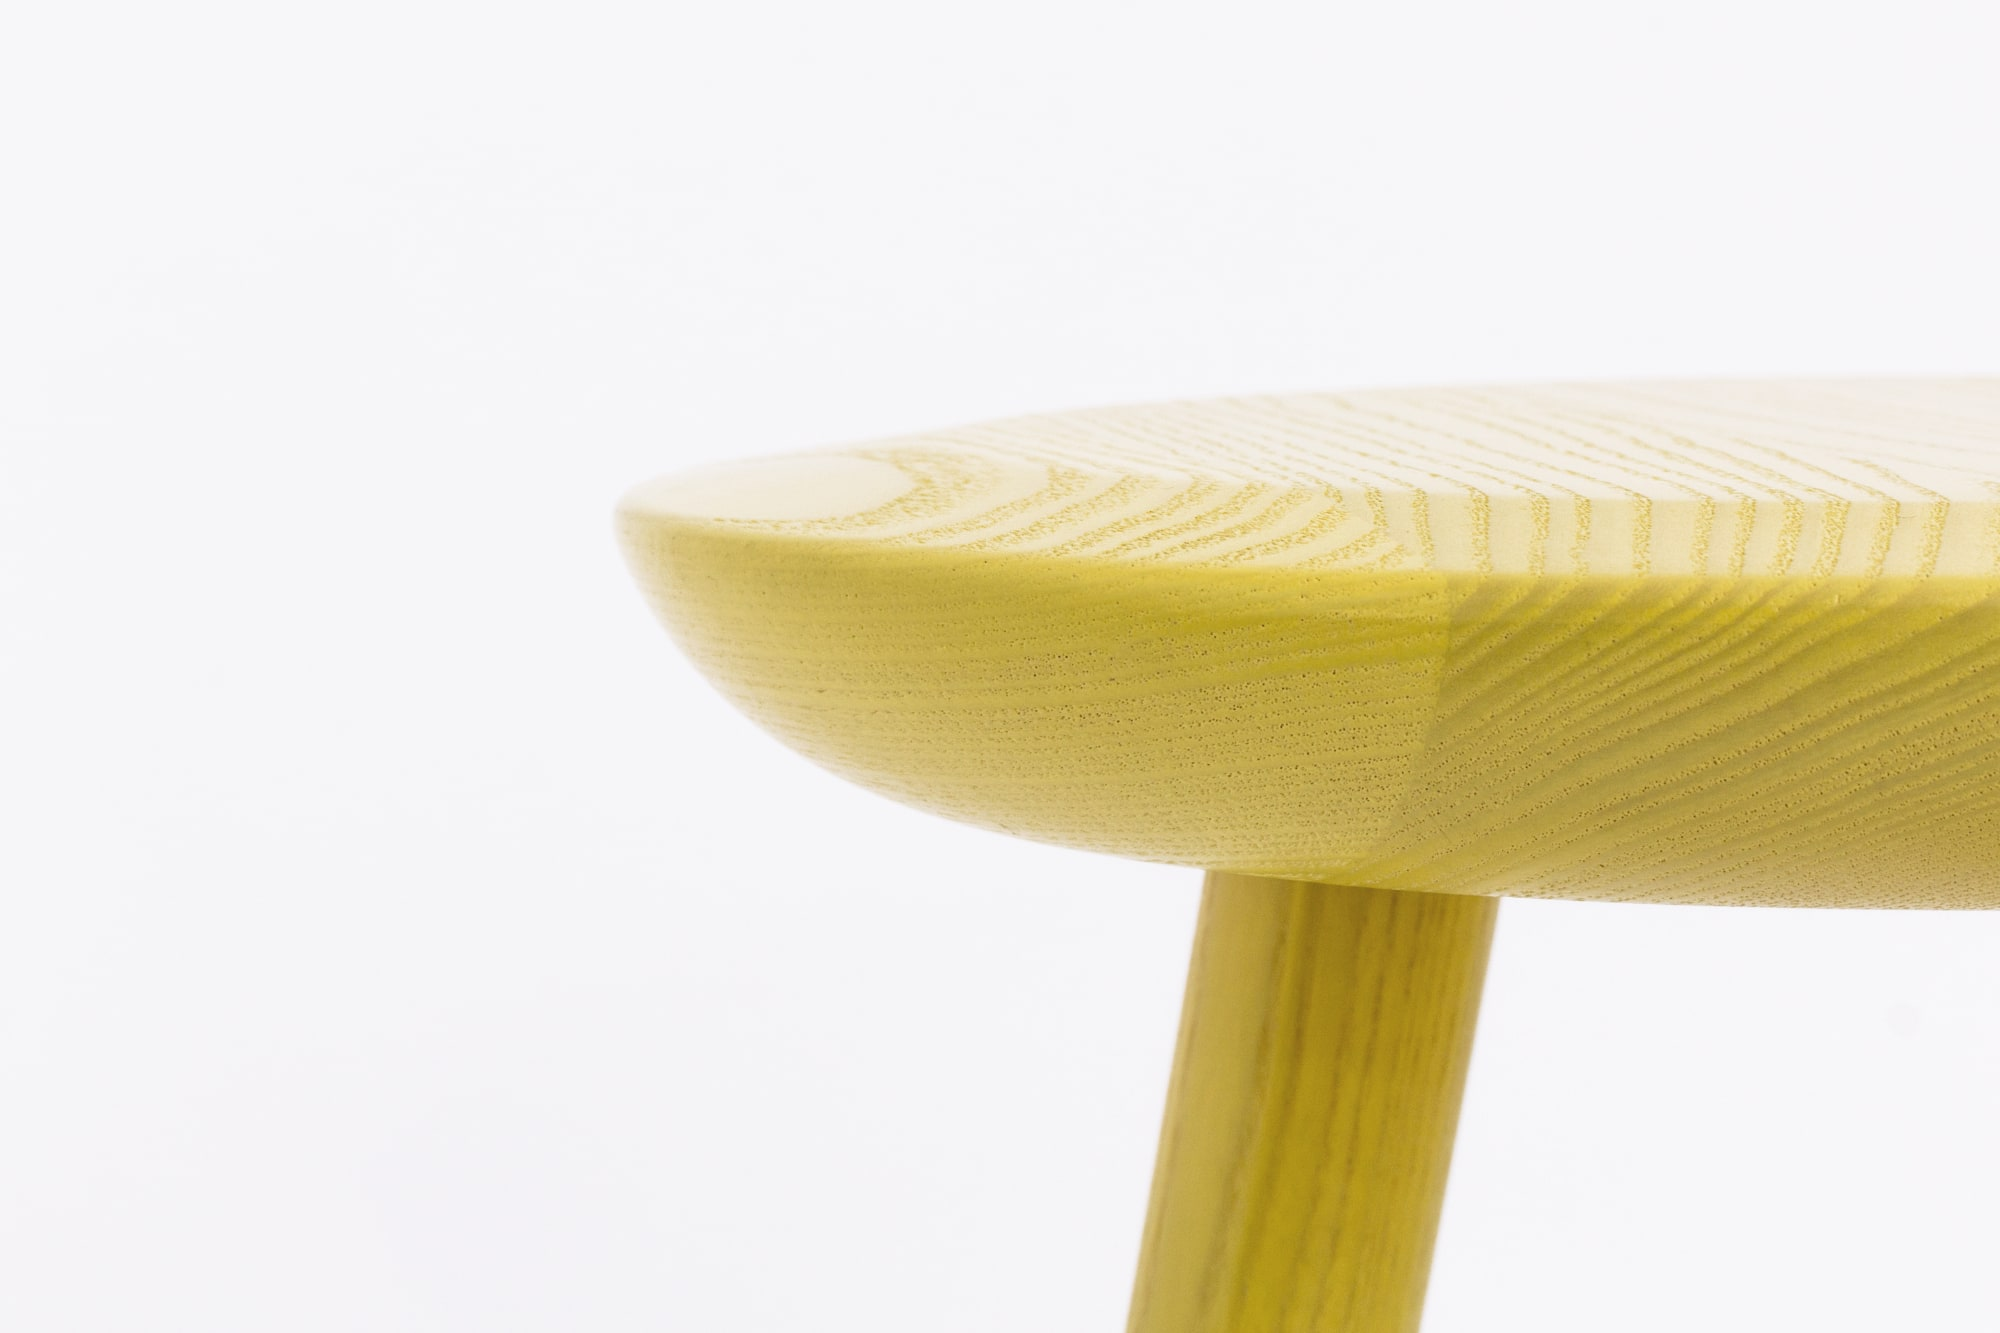 Furniture by Vitamin seen at Vitamin Living Studio, London - Vitamin Ninety Stool